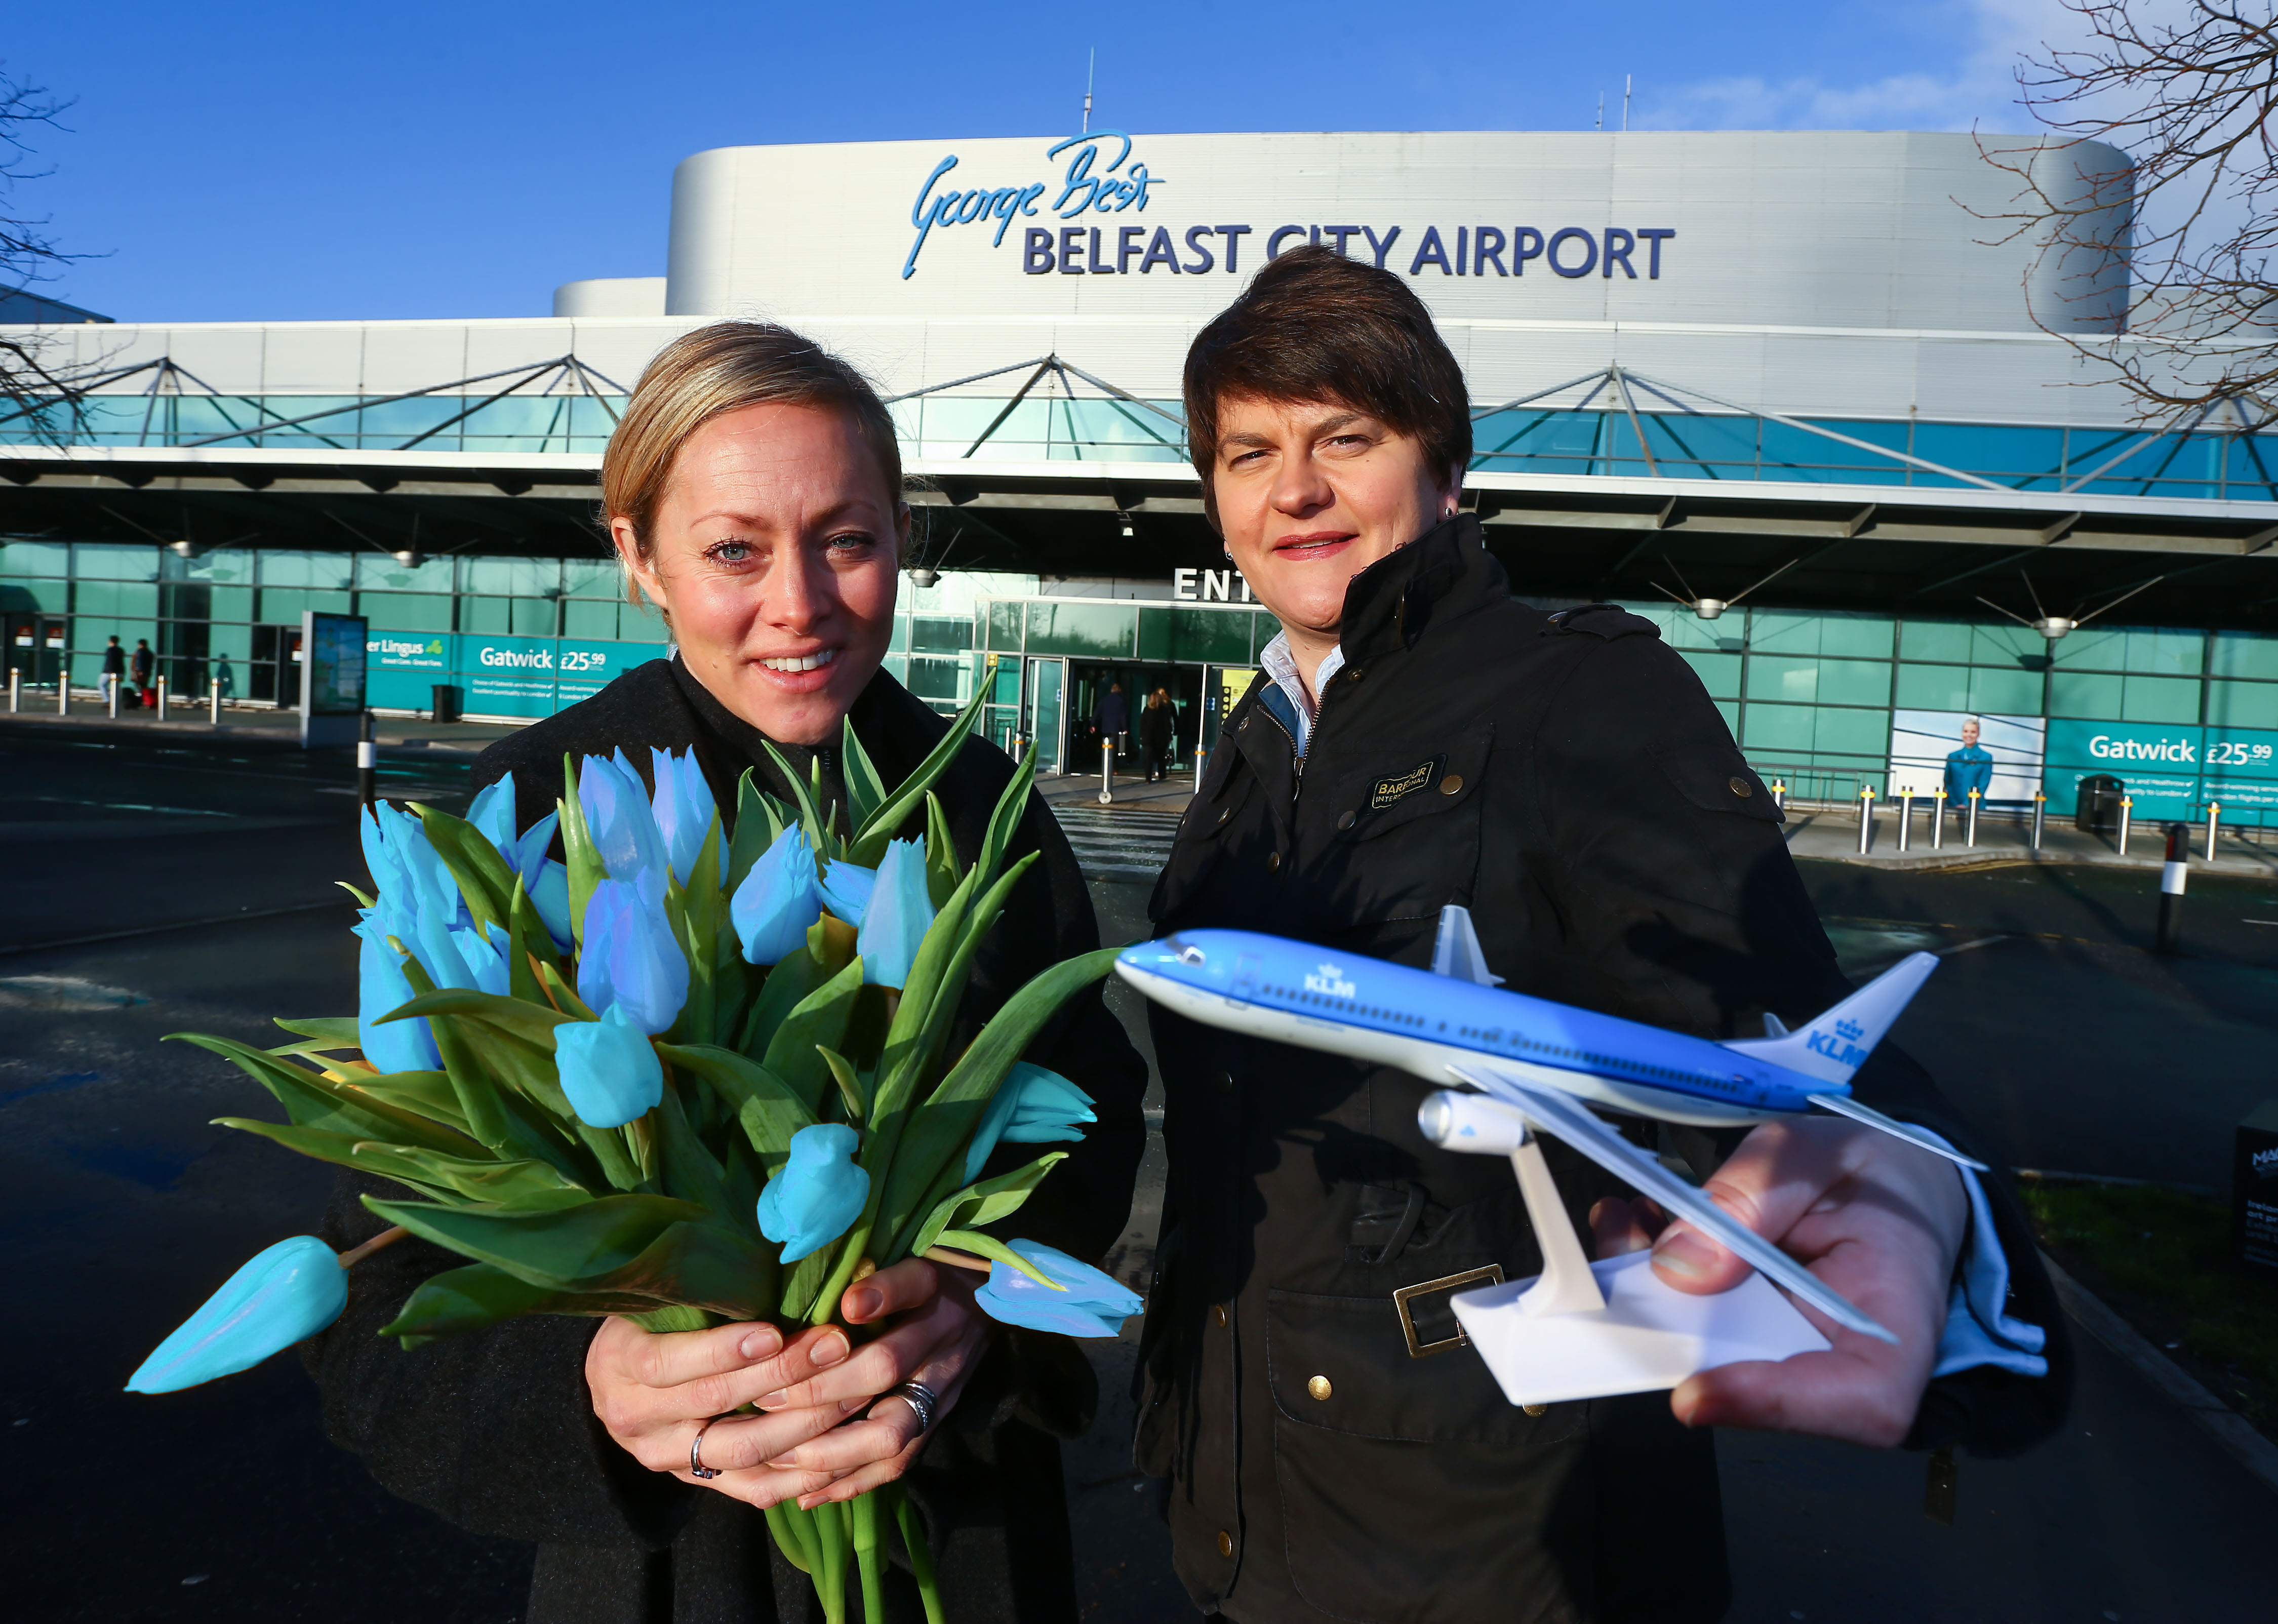 KLM ANNOUNCES ARRIVAL TO NORTHERN IRELAND